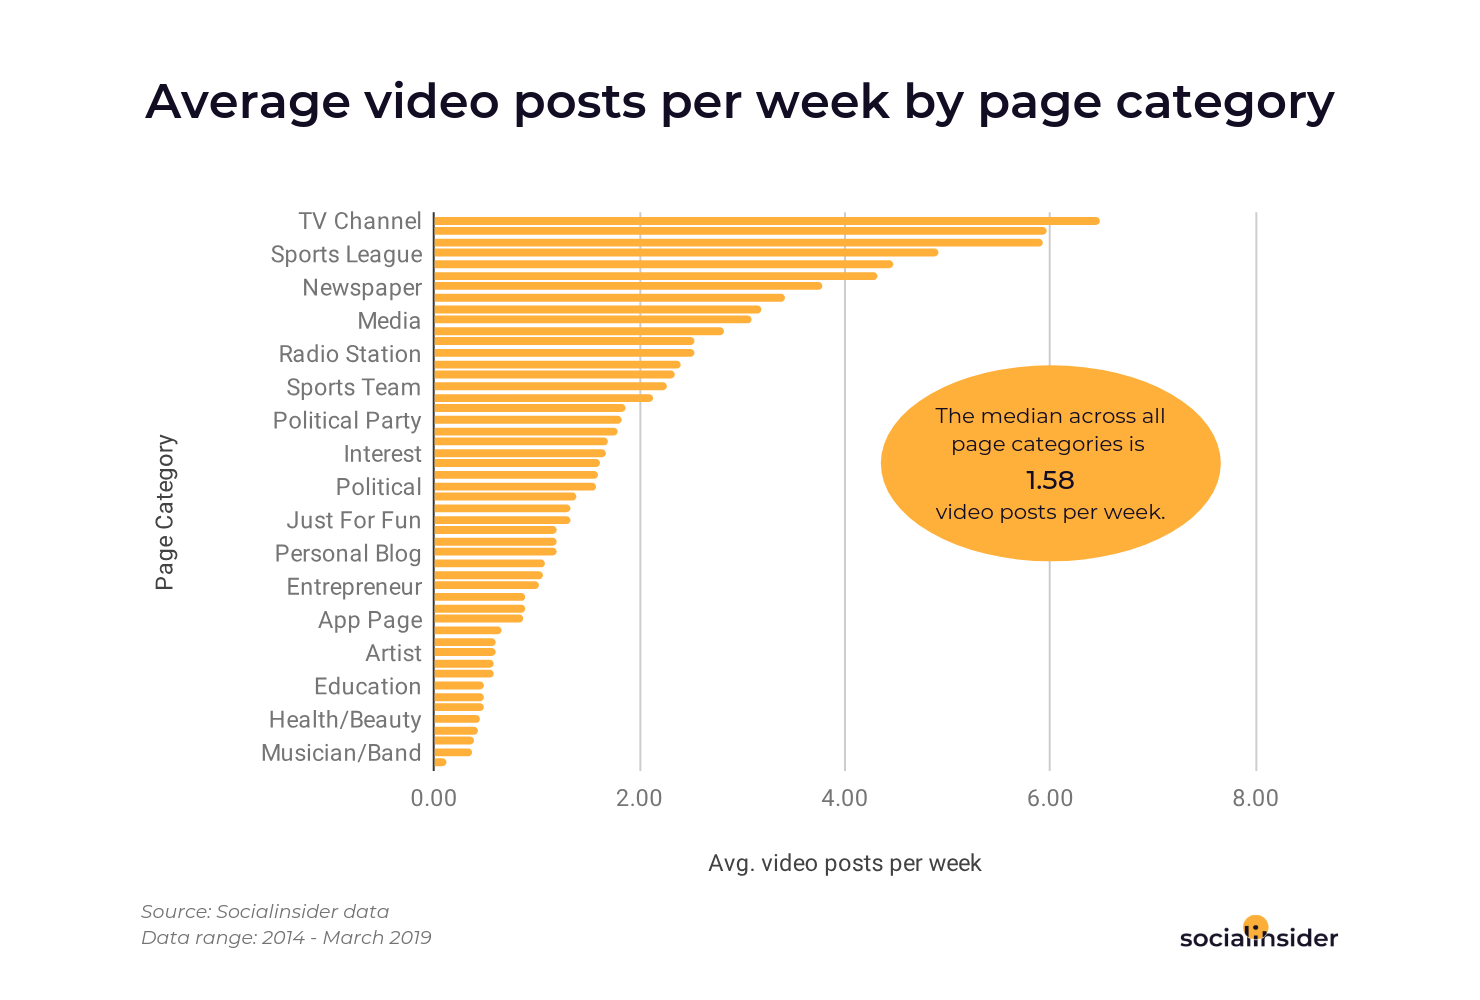 You can see what pages categories are posting videos on Facebook